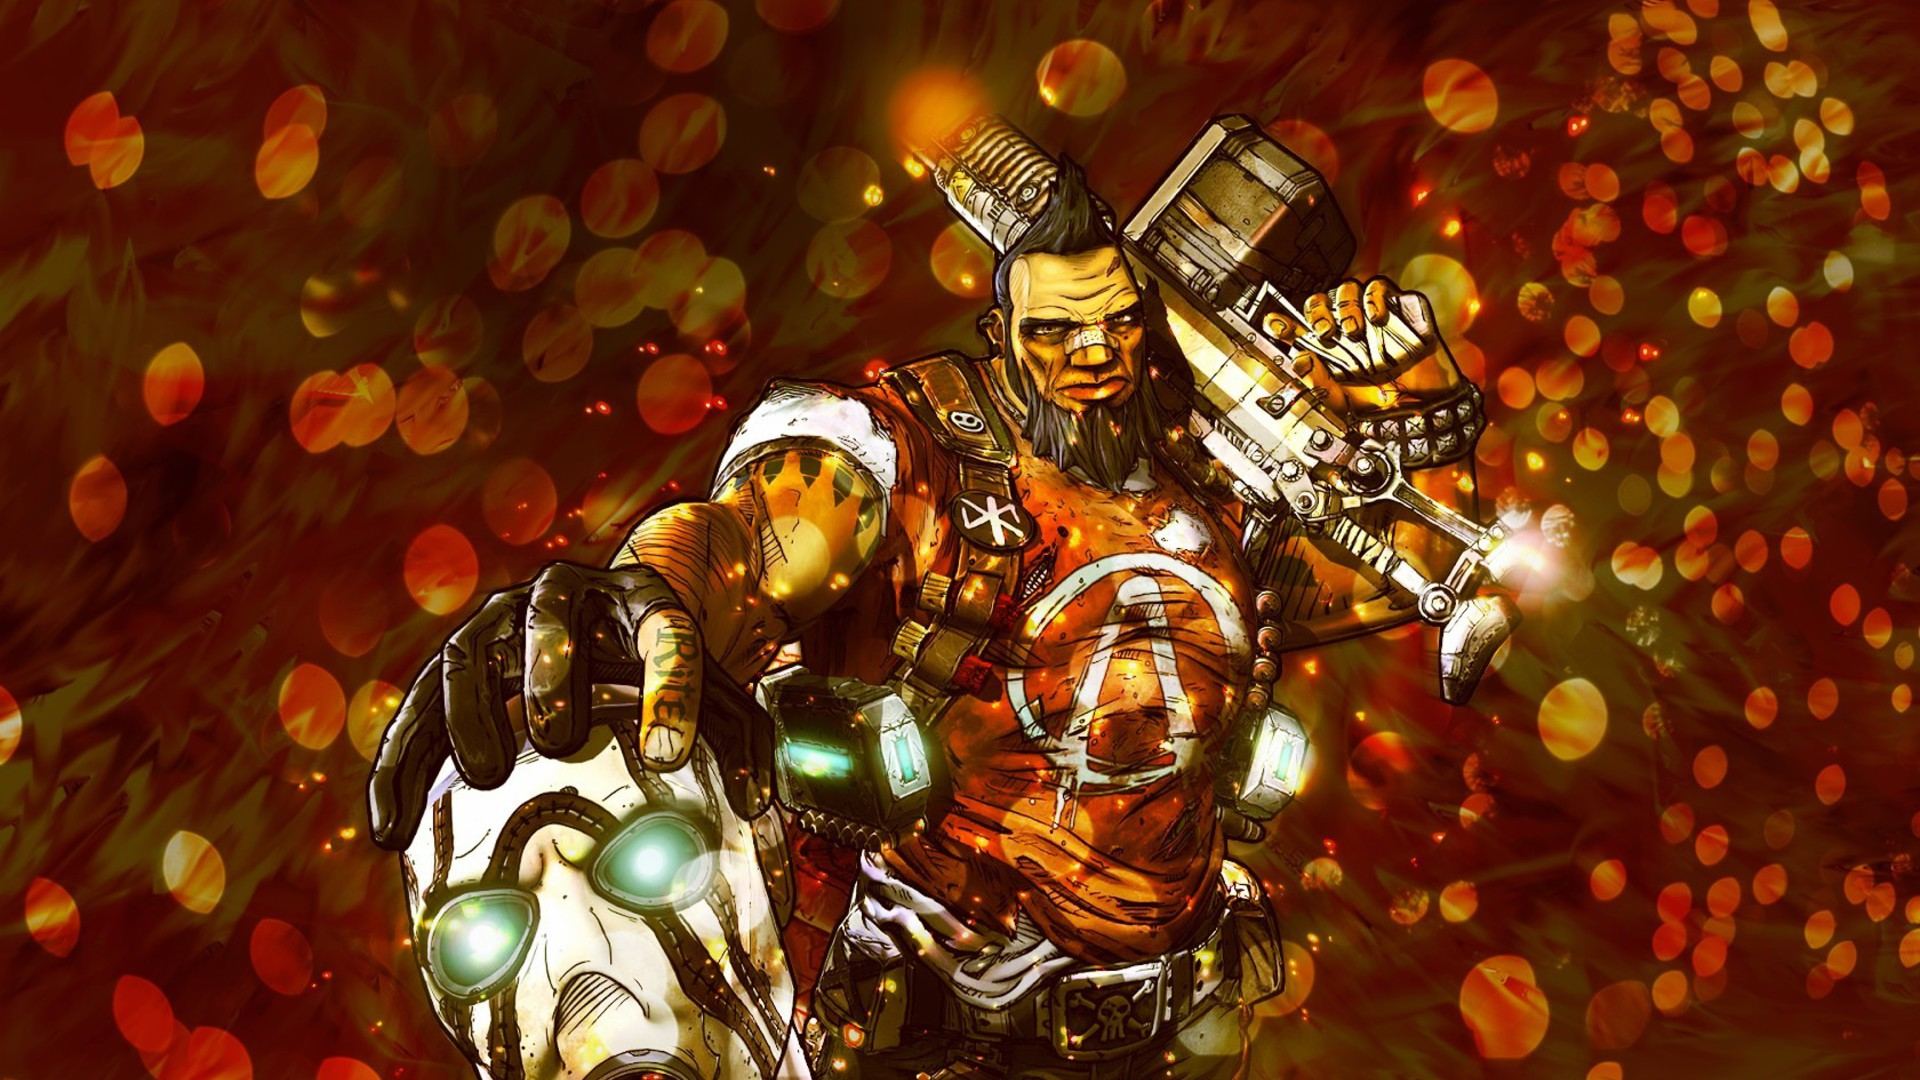 borderlands 2 salvador berserker wallpaper allwallpaper